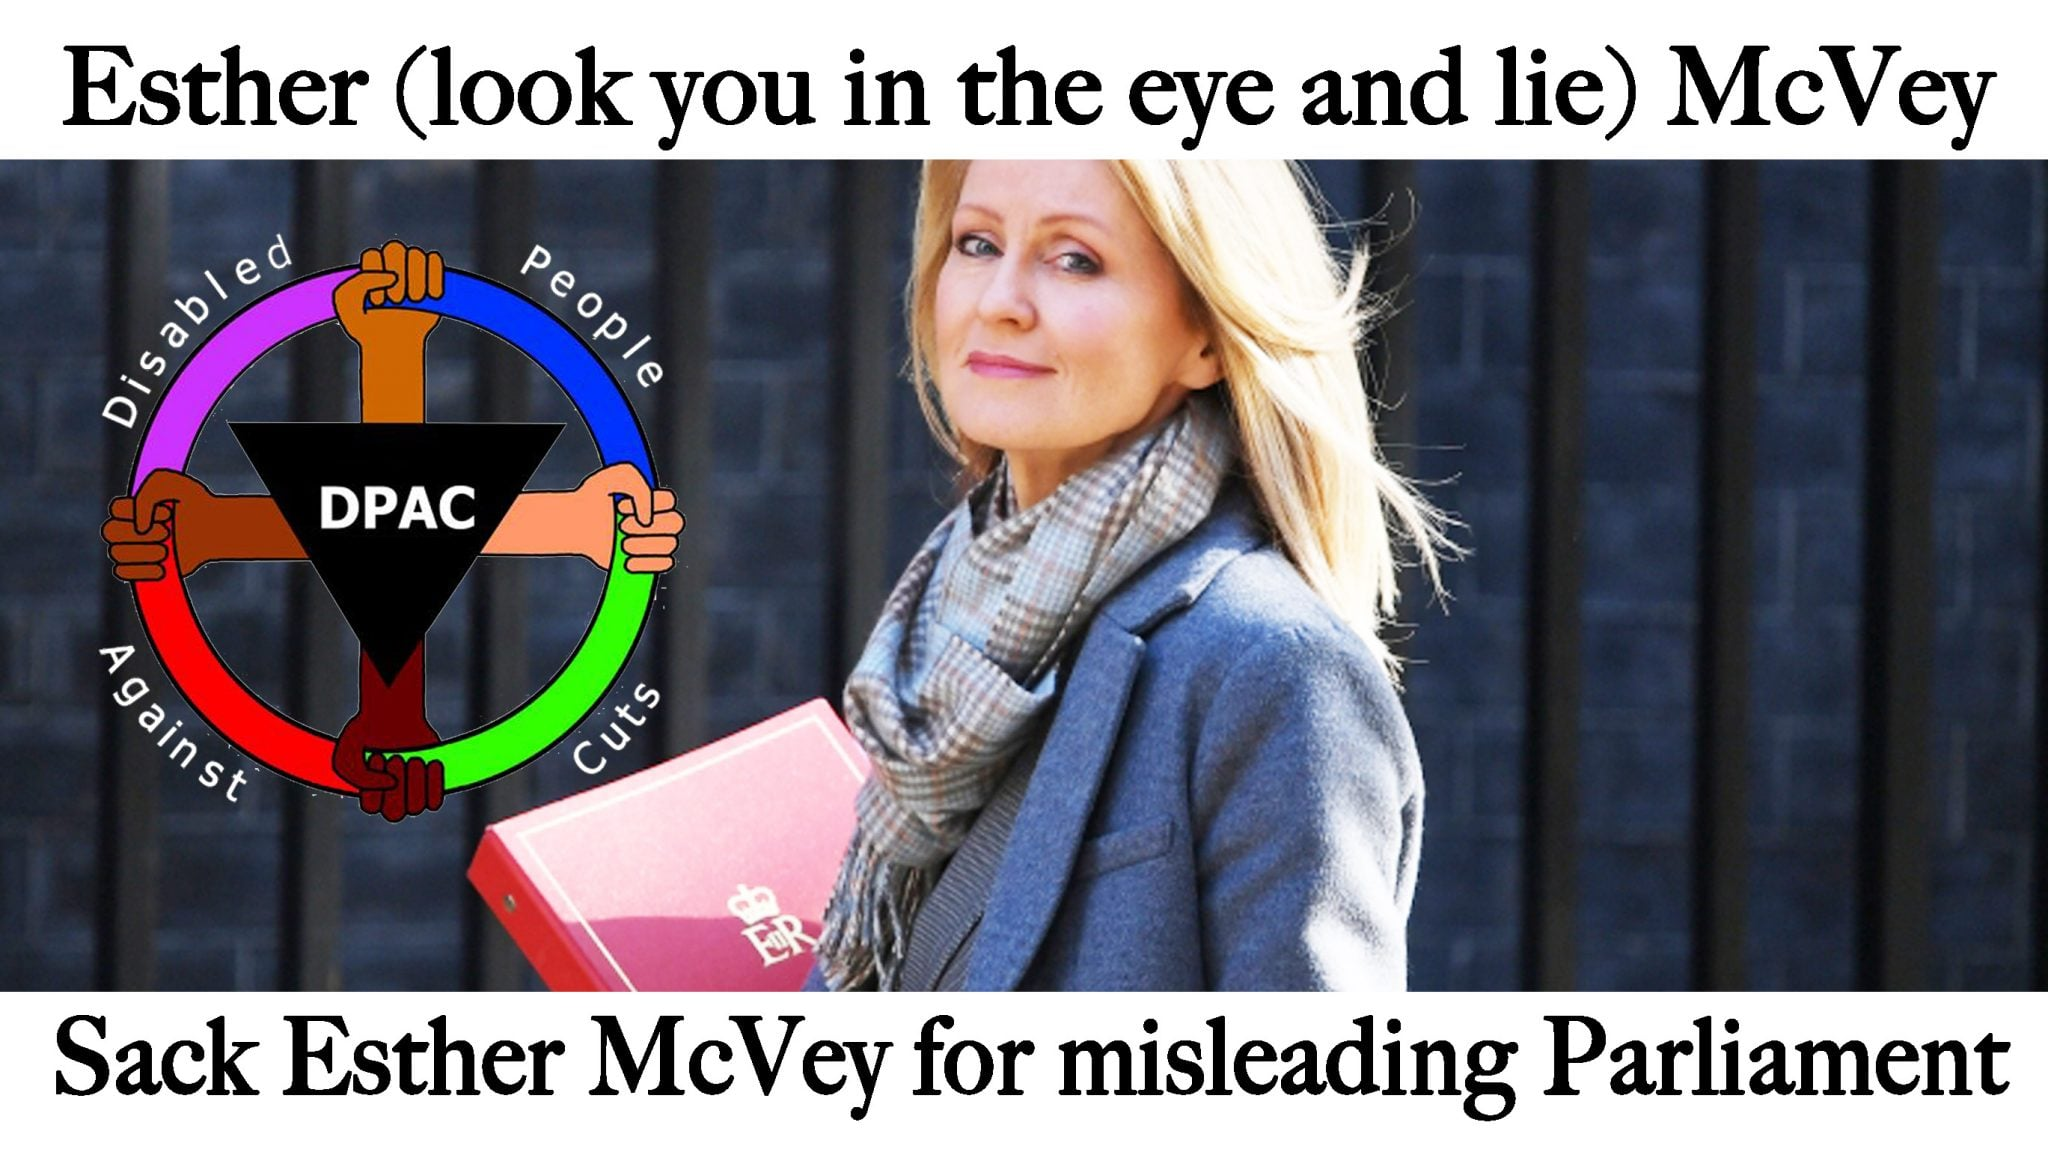 DPAC Petition to get McVey sacked for lying to parliament - please sign and share, share, share